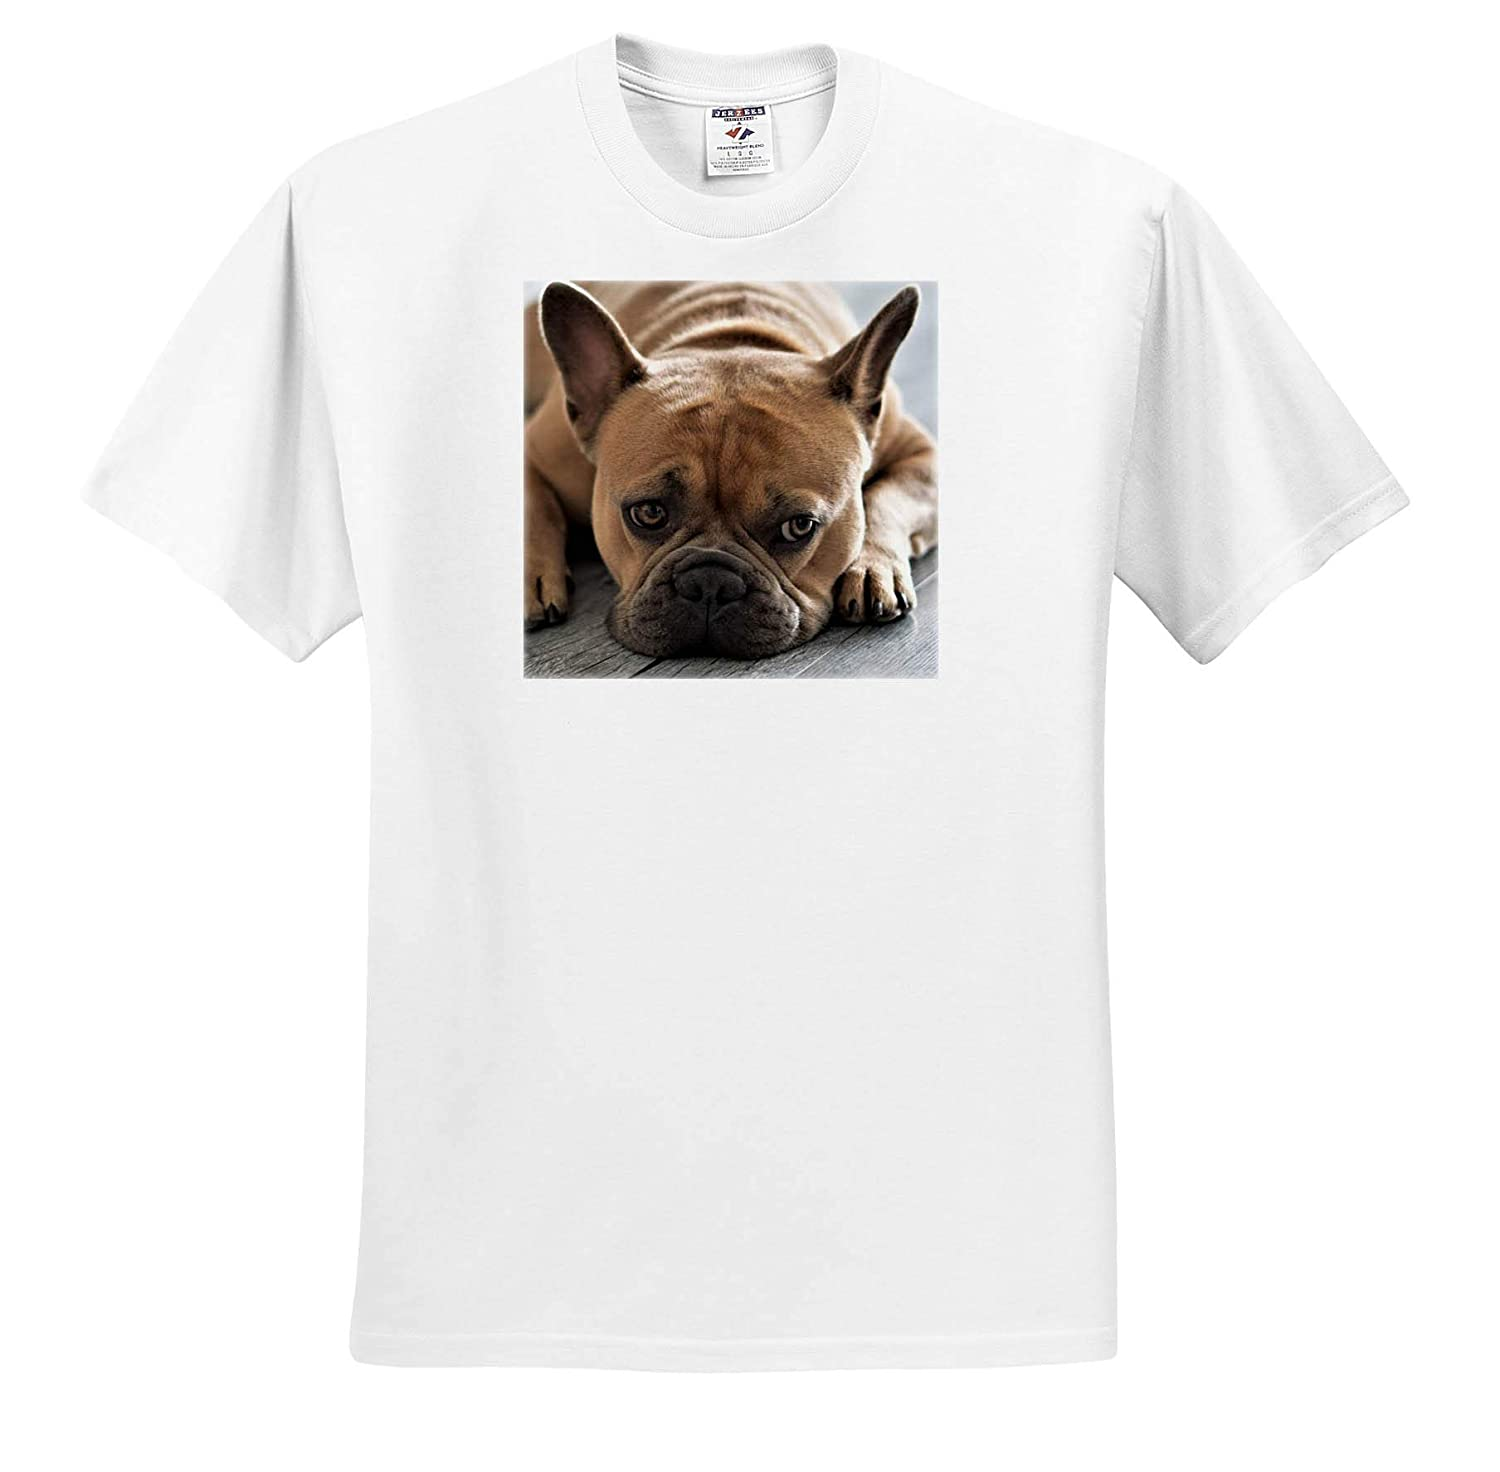 3dRose Sven Herkenrath Dog Funny Eyes of a French Bulldog Frenchie Doglover Doggy Pet ts/_320112 Adult T-Shirt XL